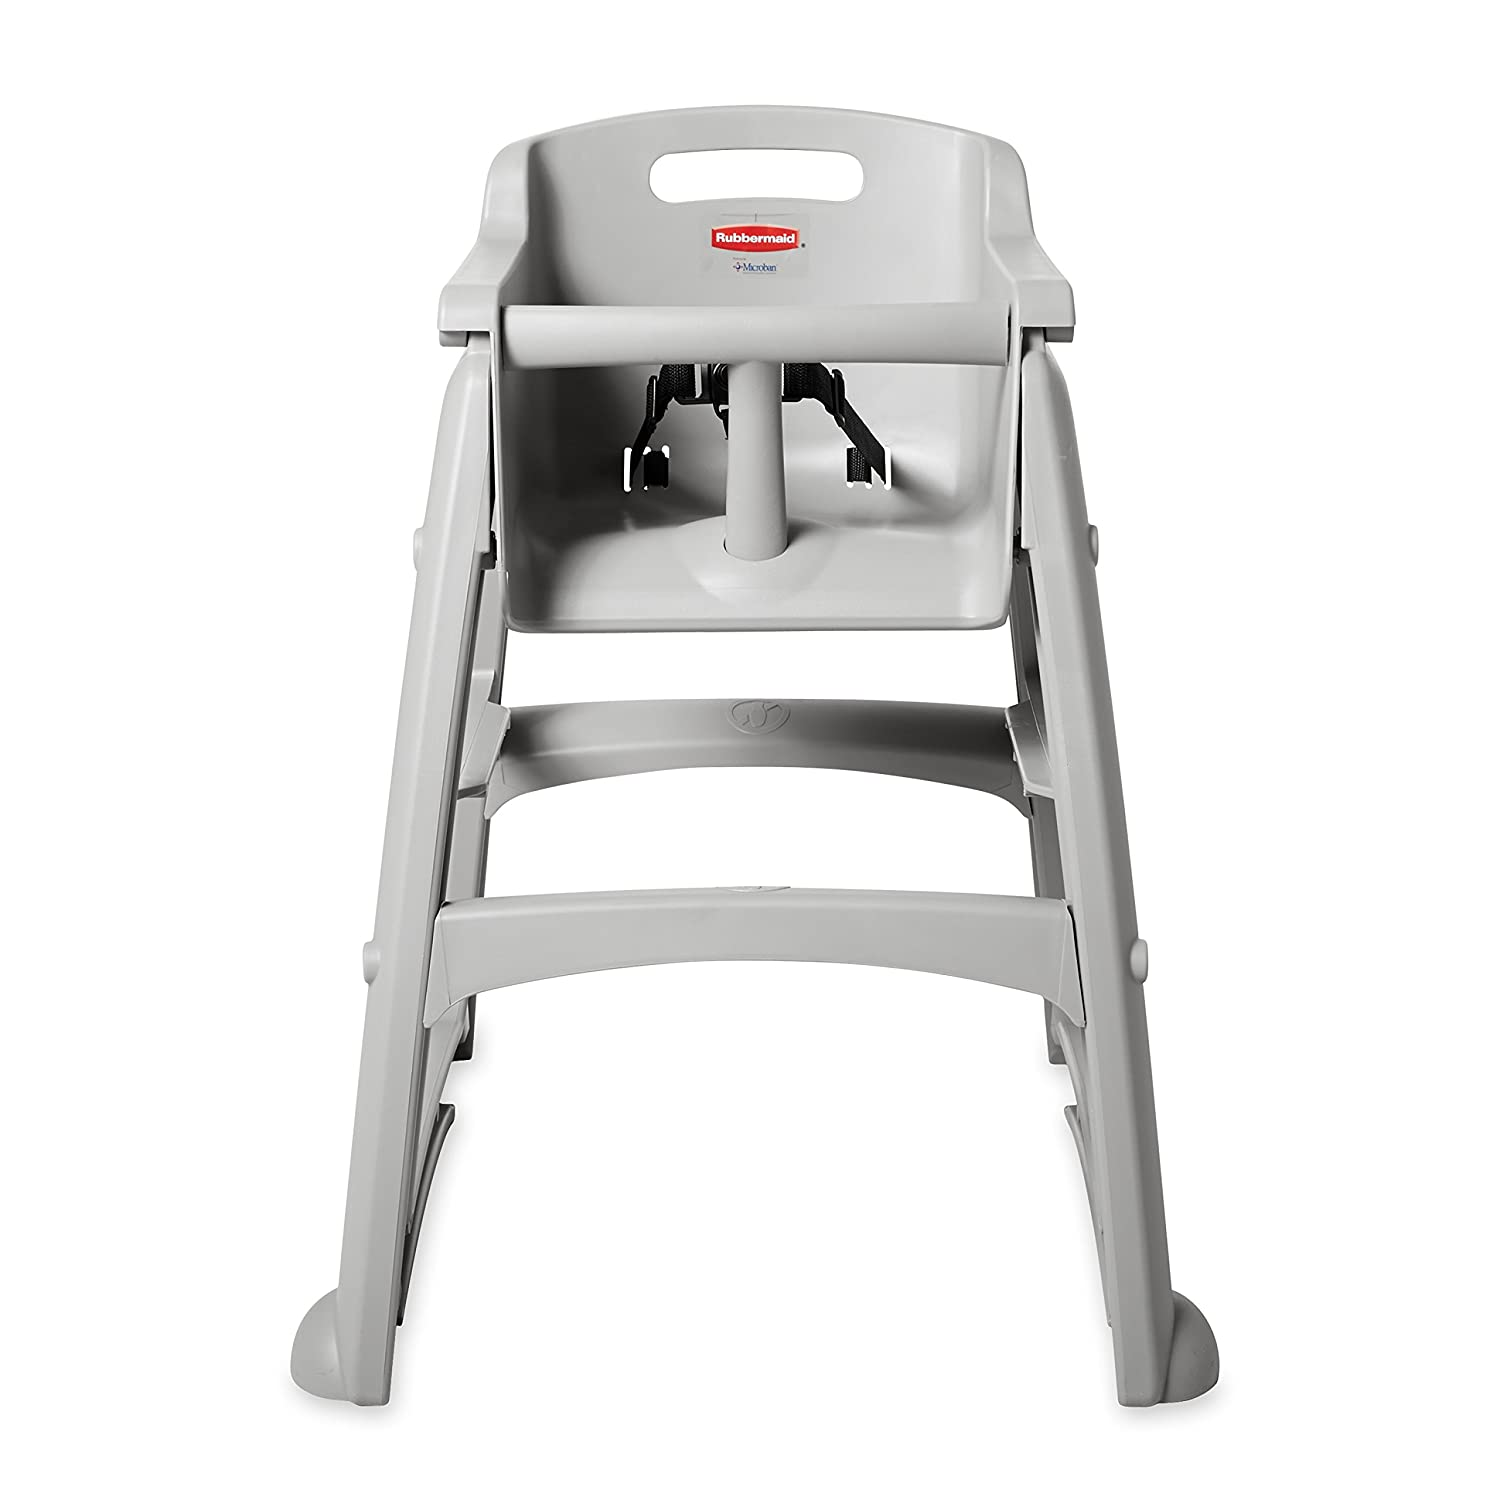 restaurant style highchair with tray amazoncom rubbermaid platinum sturdy chair youth seat high chair platinum industrial u0026 scientific